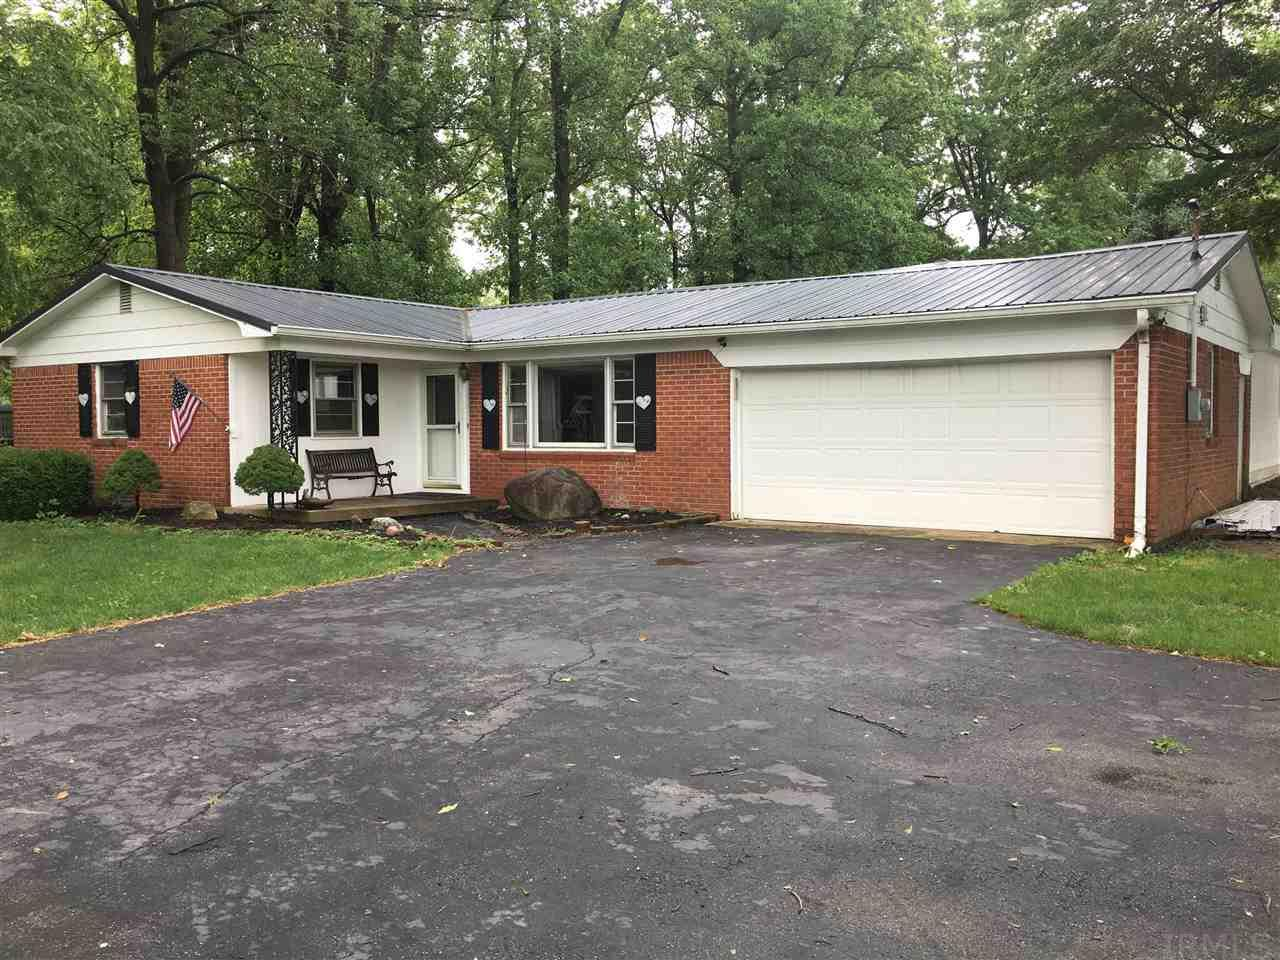 10987 W 100 SOUTH, Russiaville, IN 46979